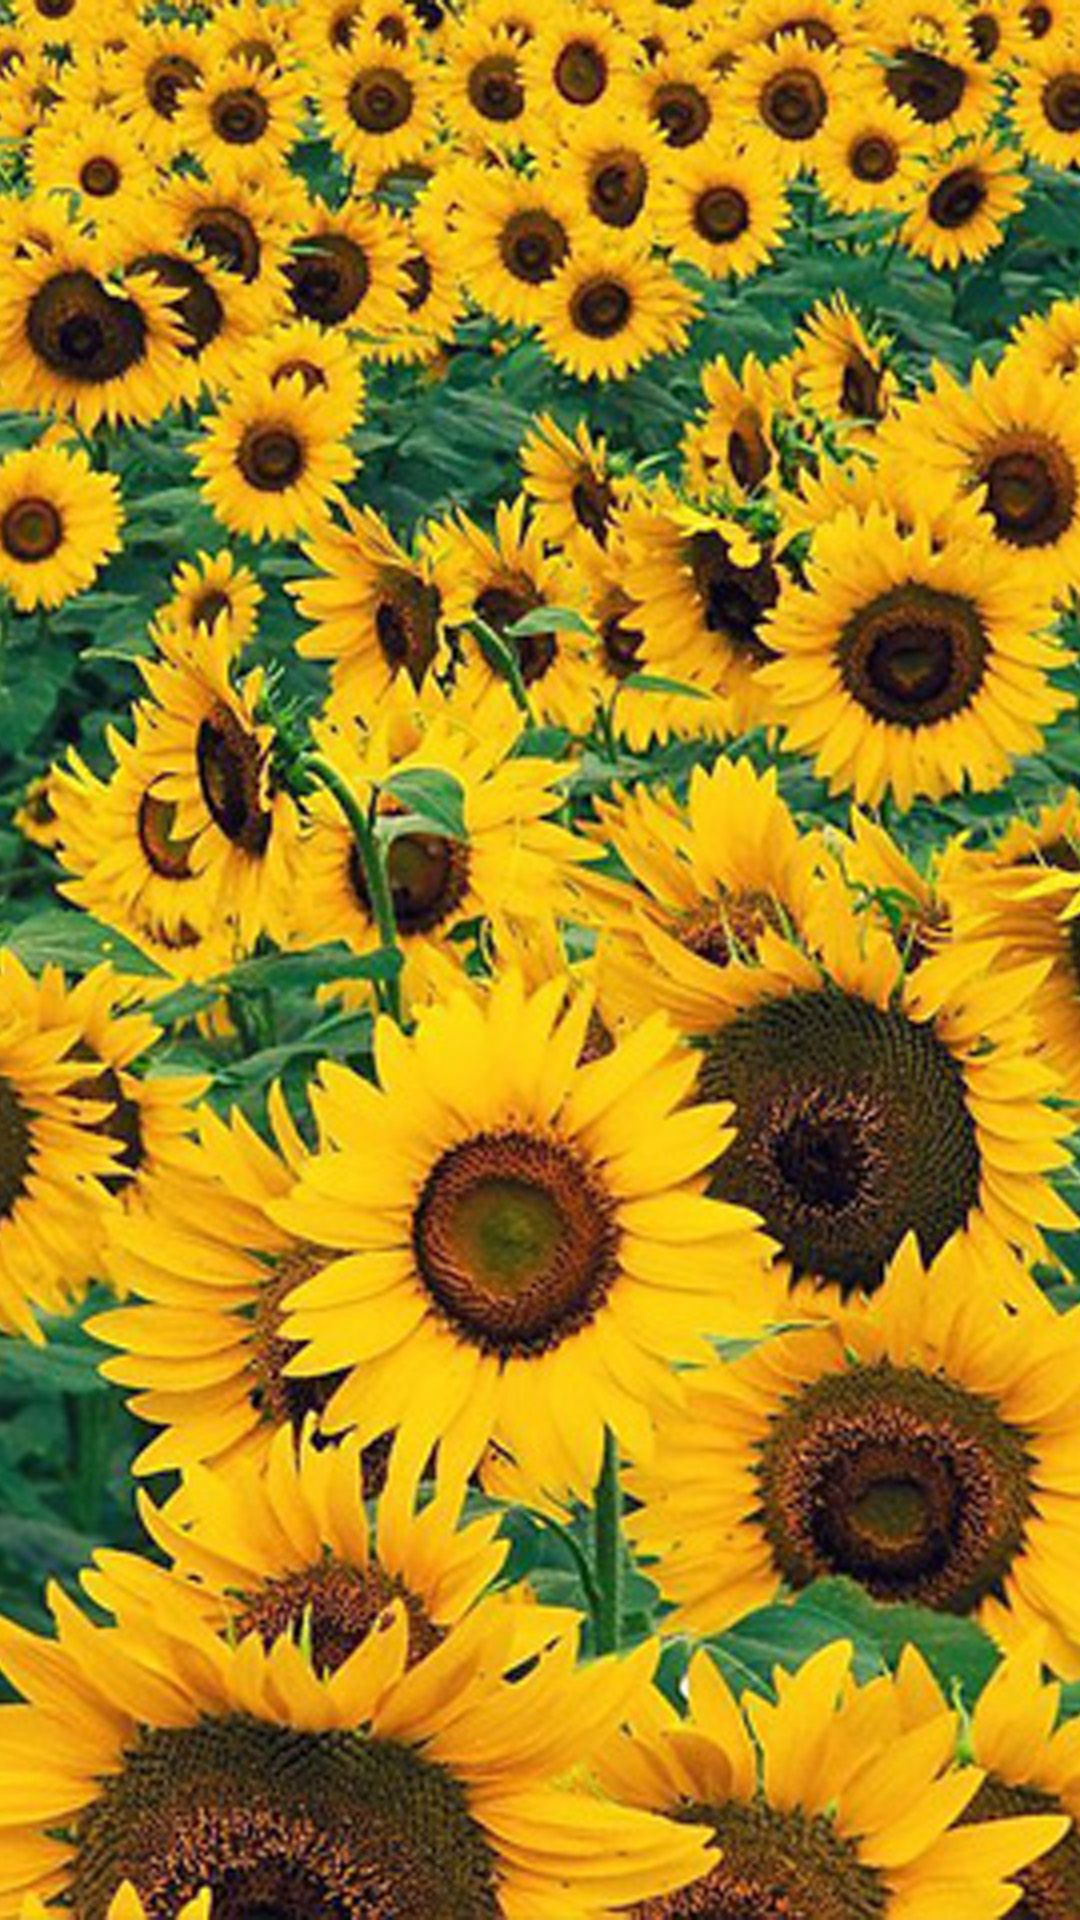 sunflower wallpapers best wallpapers | wallpapers | pinterest